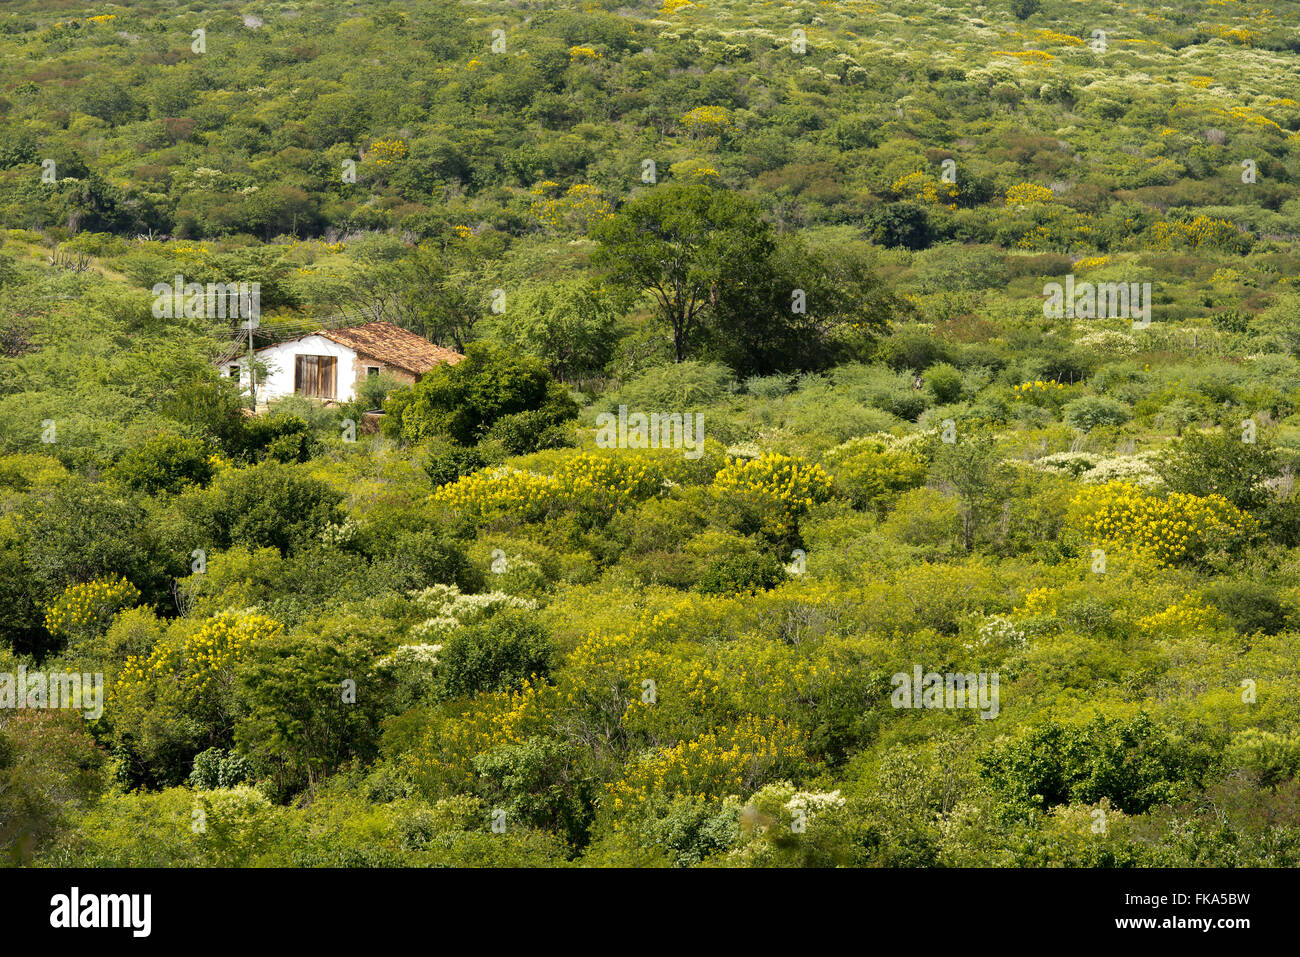 House kills backcountry in the transition to flowering acacias Sierra de Buique in the rainy season - Stock Image